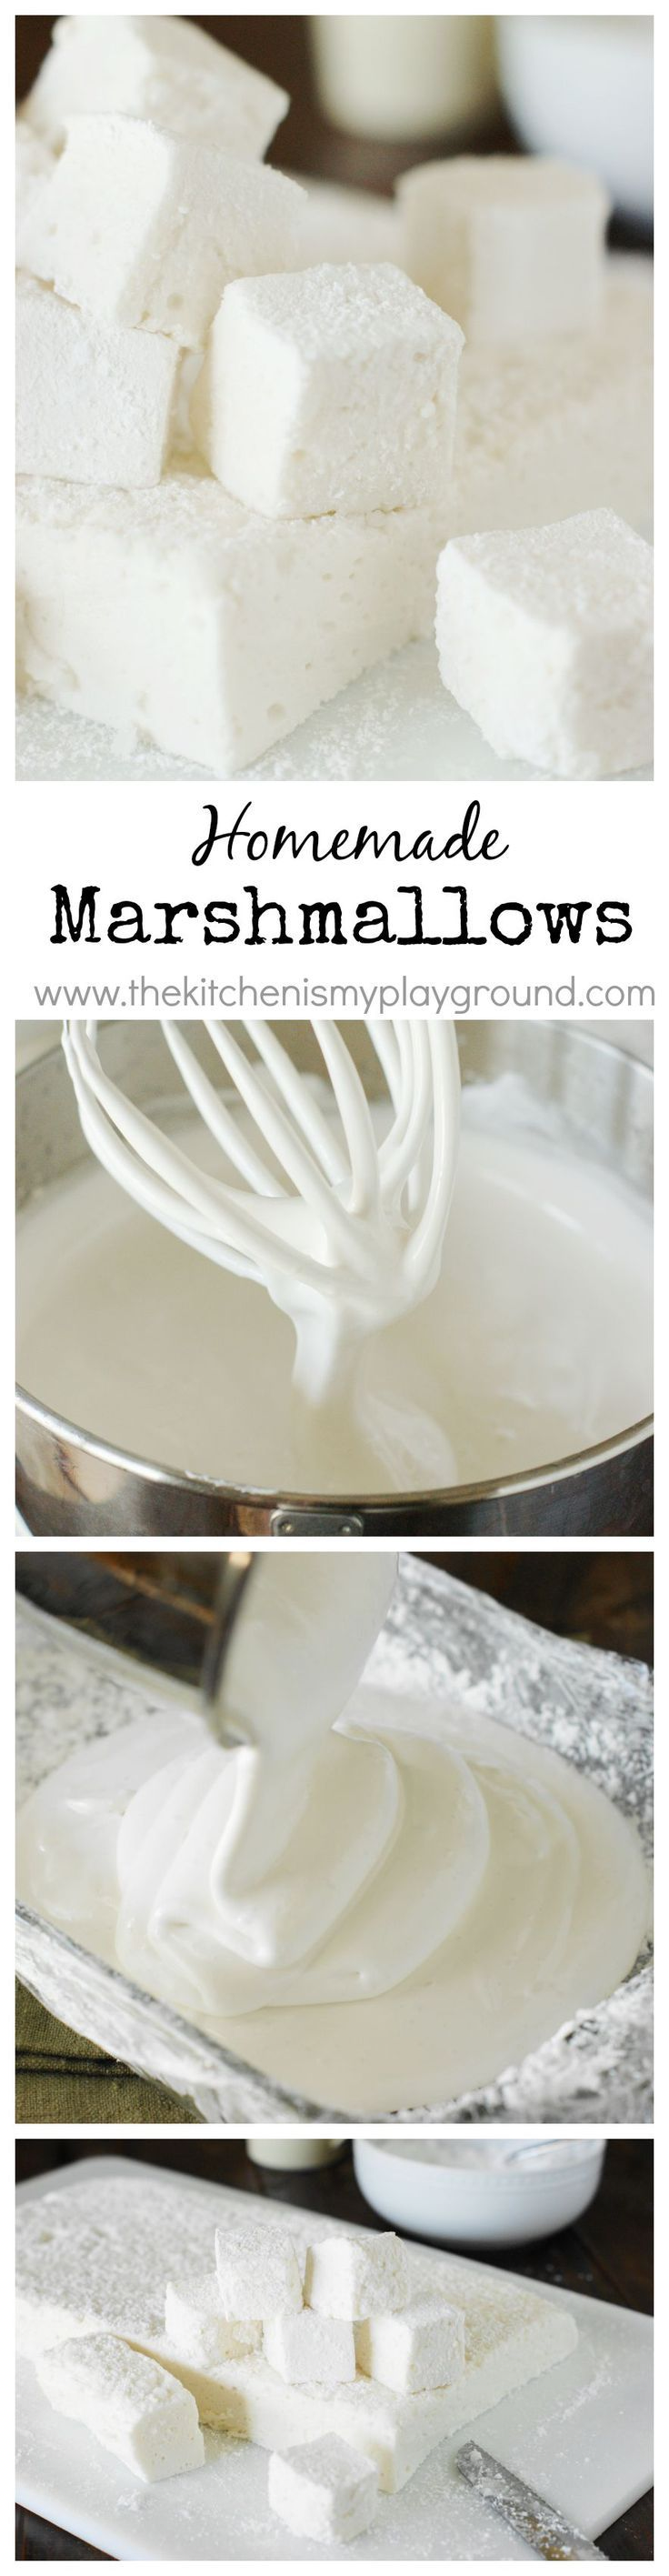 How to Make Homemade Marshmallows ~ they're TOTALLY worth the homemade time & effort! www.thekitchenismyplayground.com